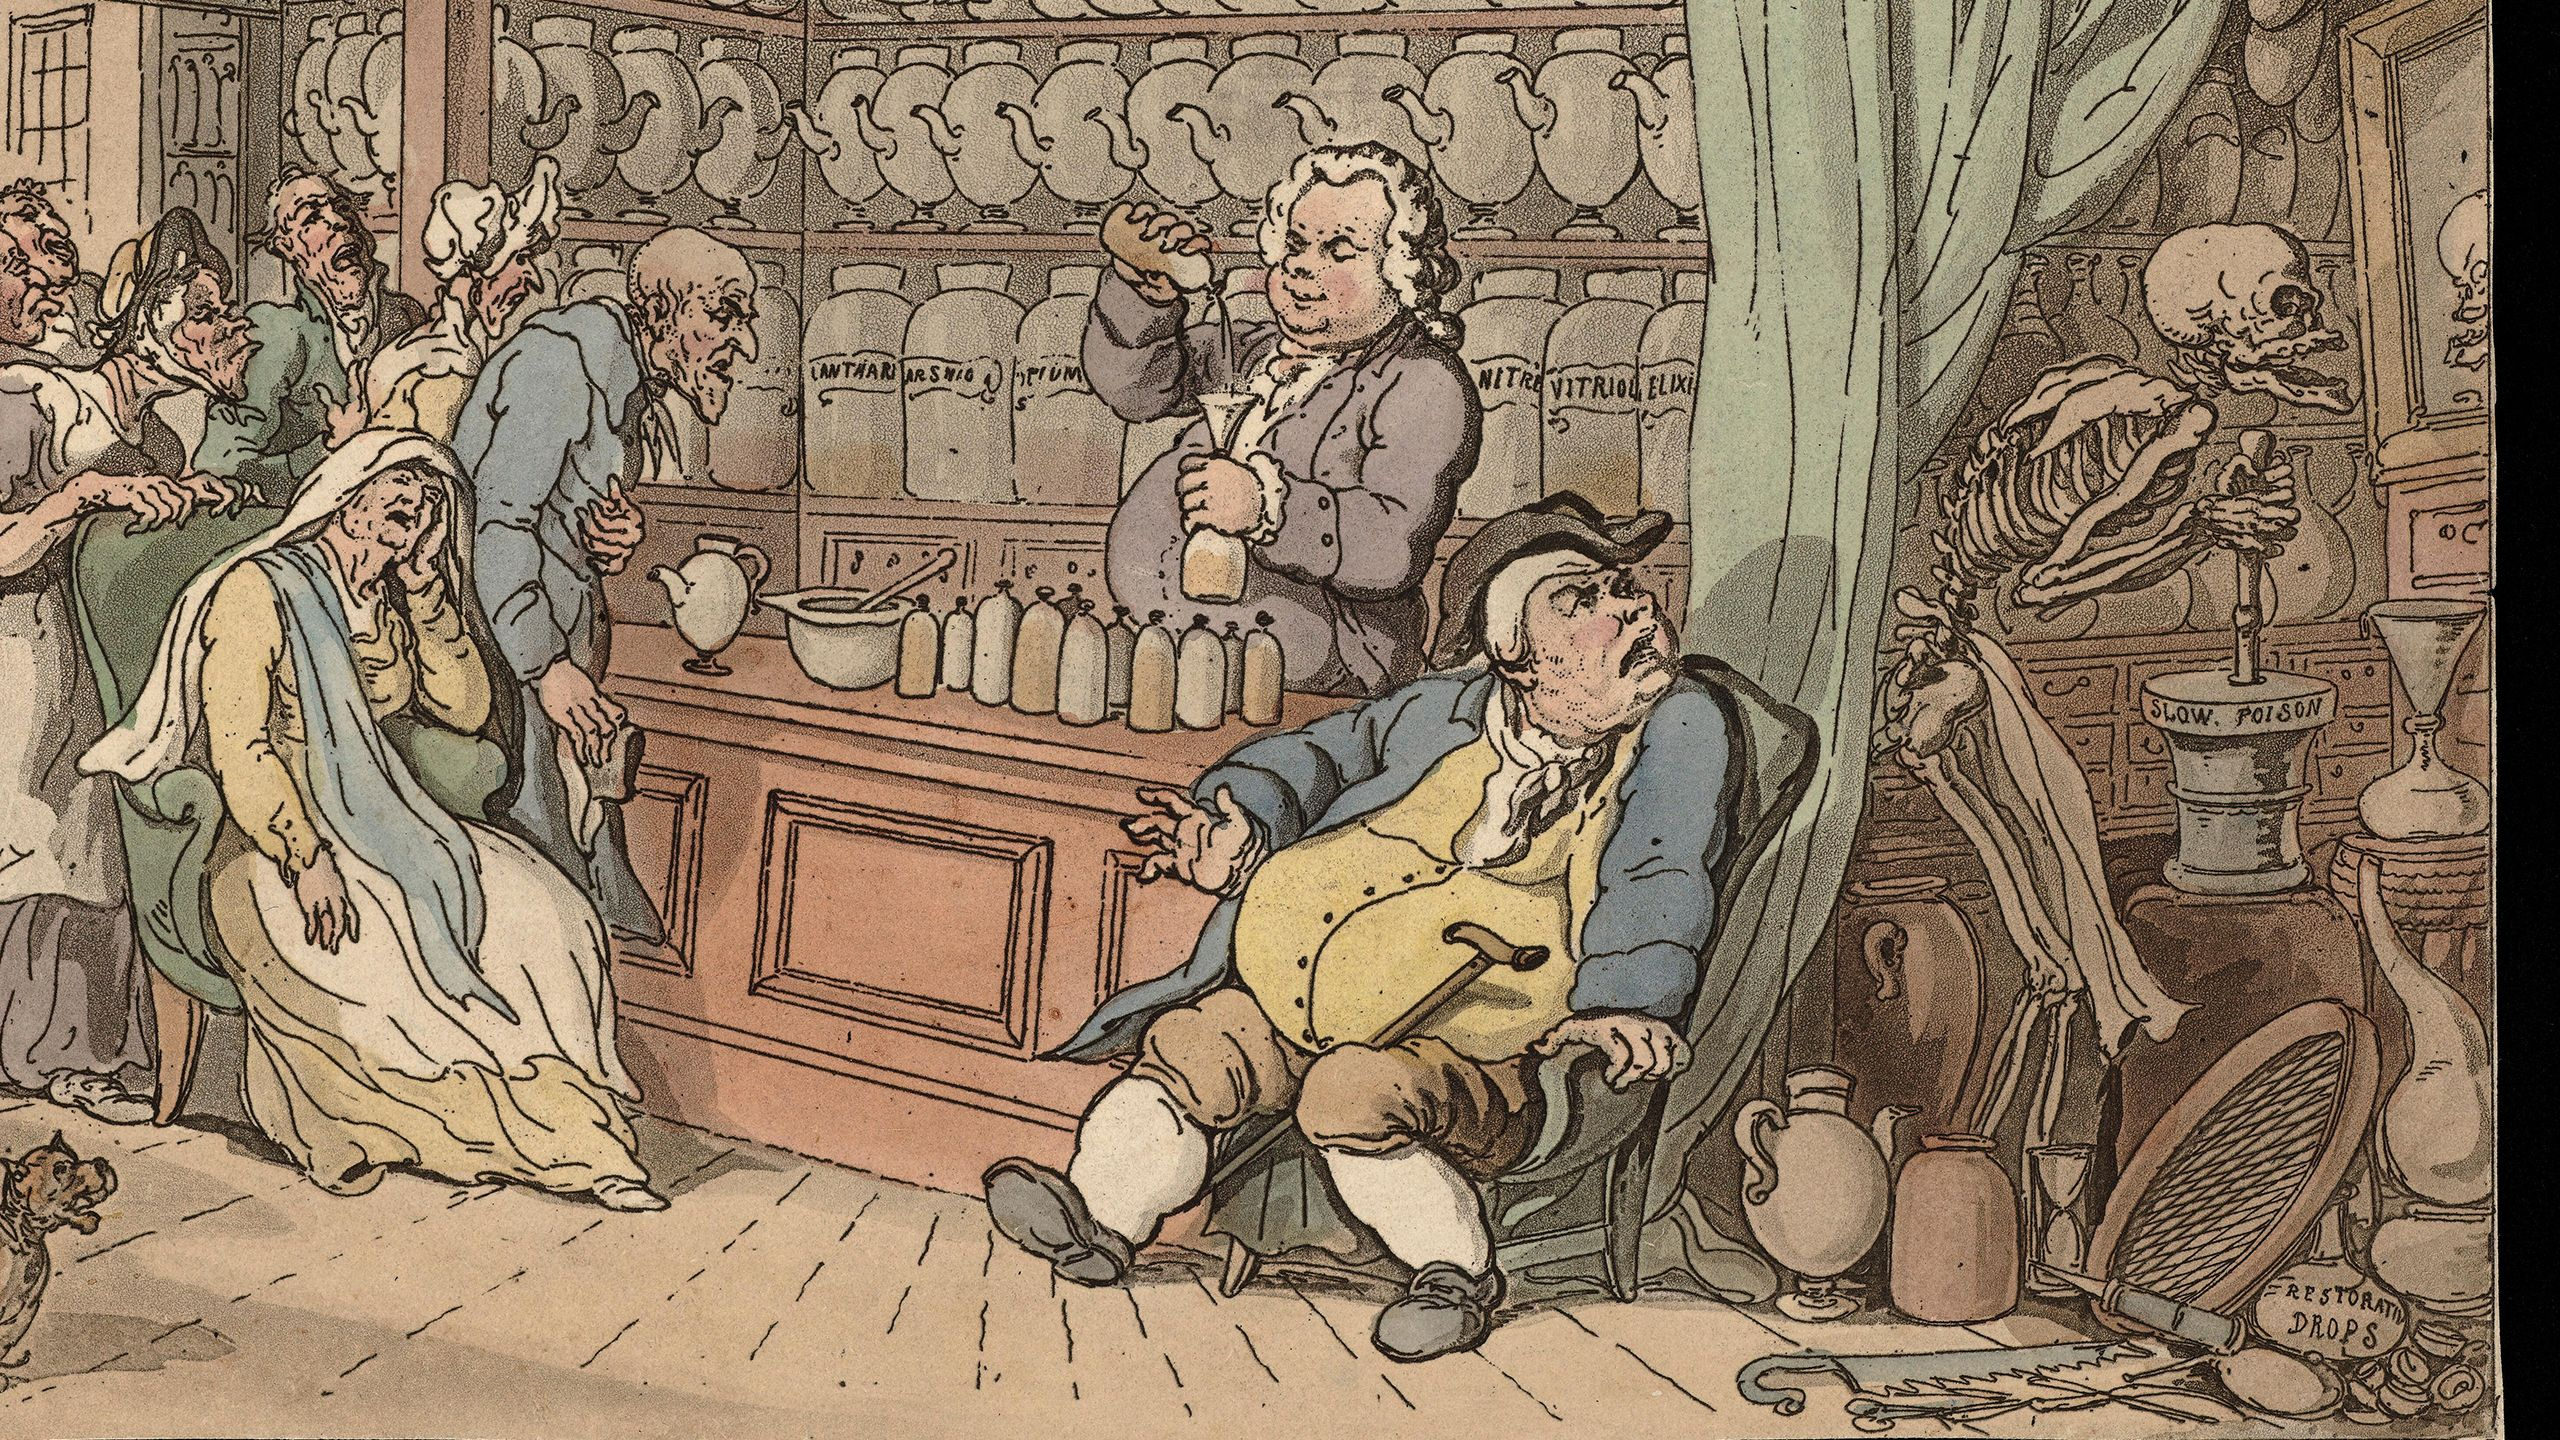 Thomas Rowlandson, The dance of death: the apothecary. Coloured aquatint, 1816. Image: Wellcome Collection. Public Domain